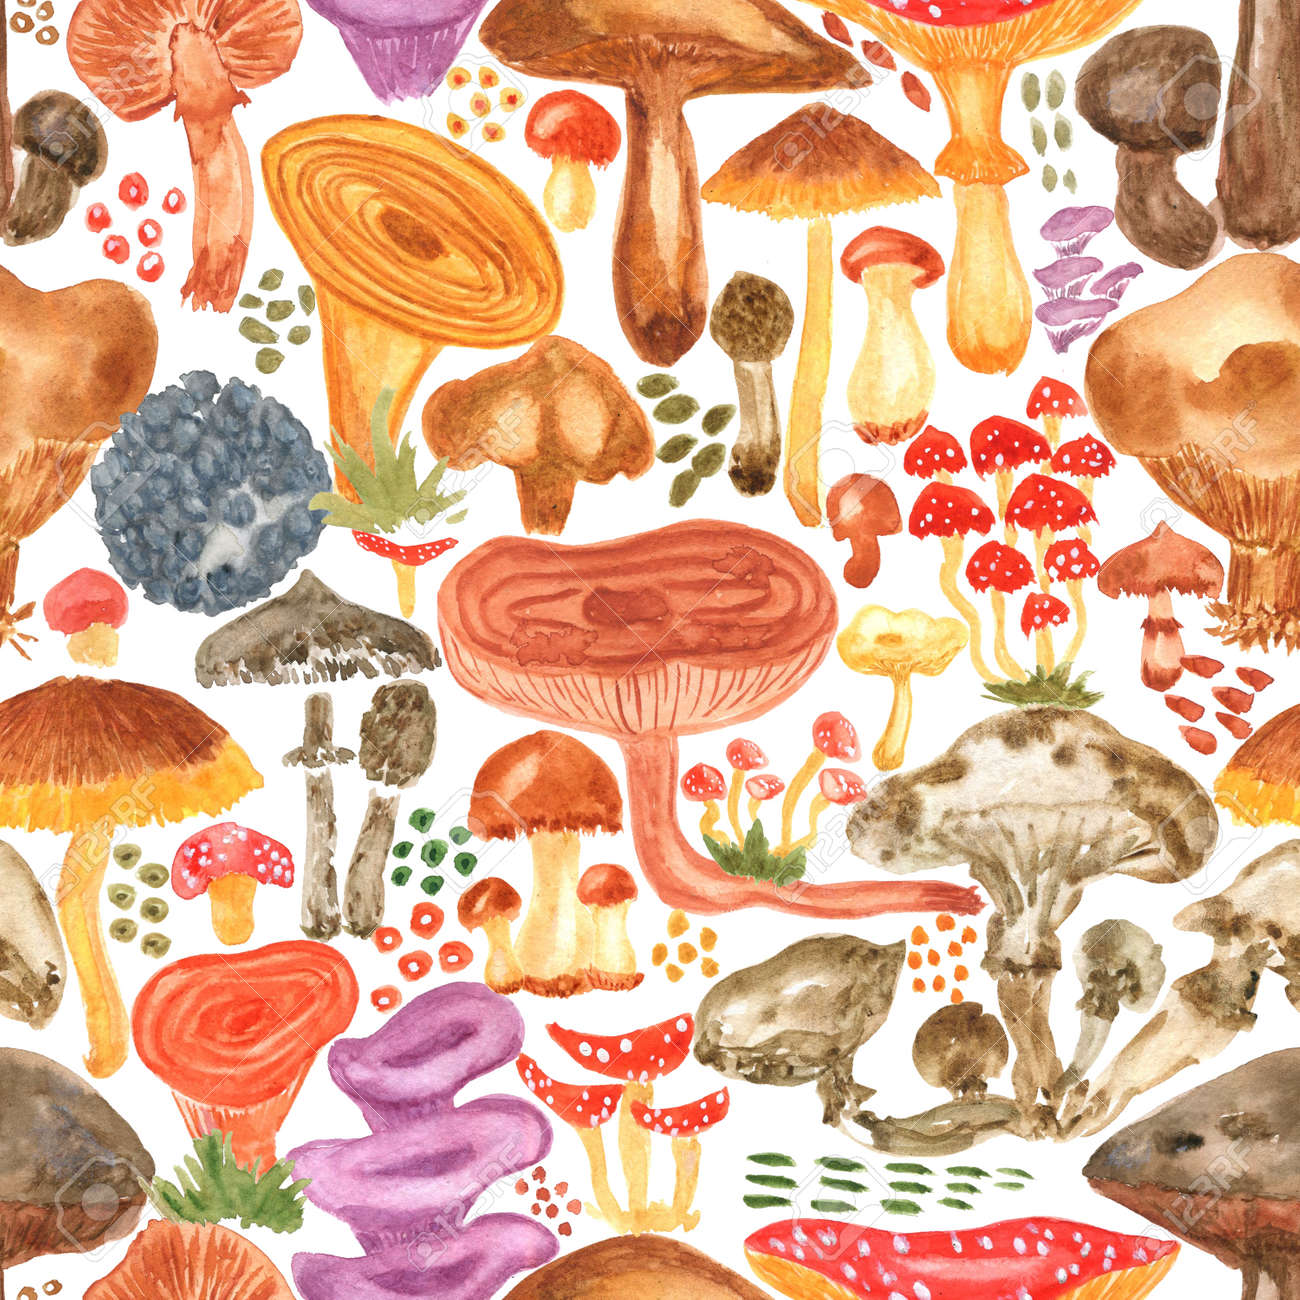 Colorful watercolor mushrooms seamless pattern. Hand Illustration for creating fabrics, wallpapers, gift wrapping paper, invitations, textile, scrapbooking. Isolated on white background. - 165387220